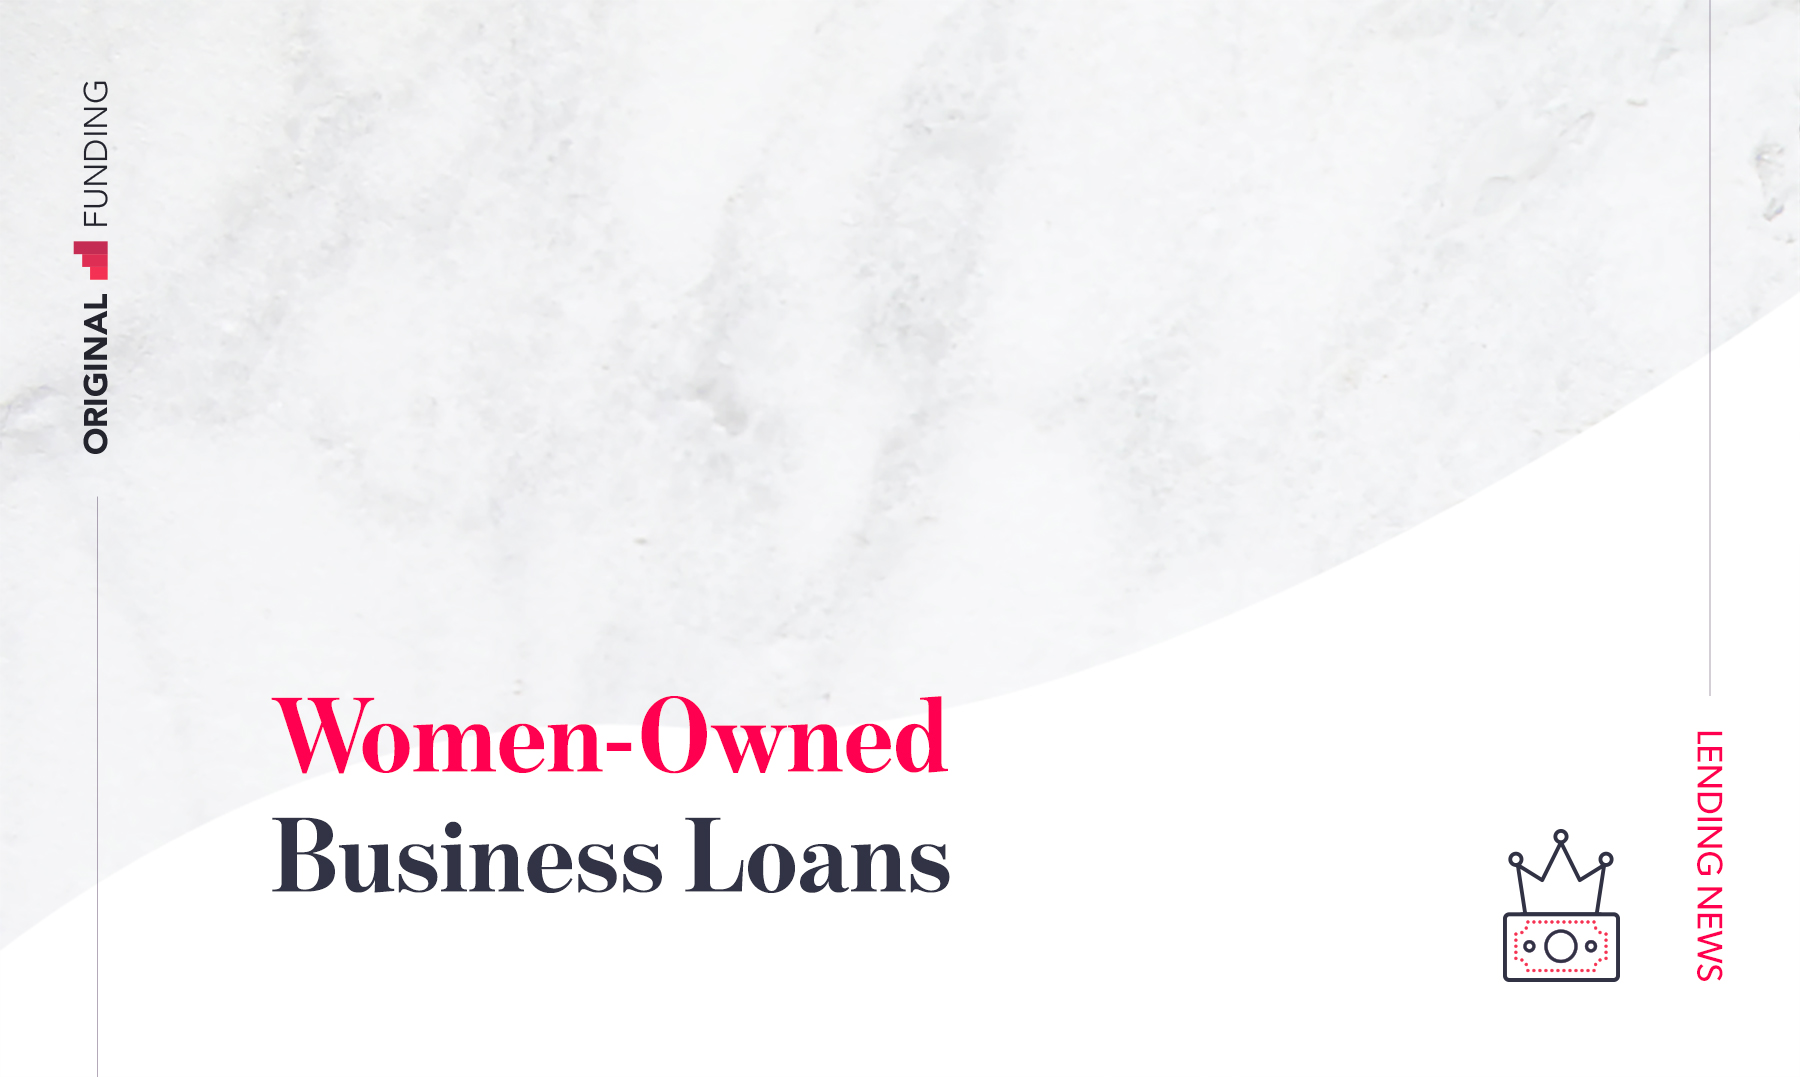 Women-Owned Business Loans